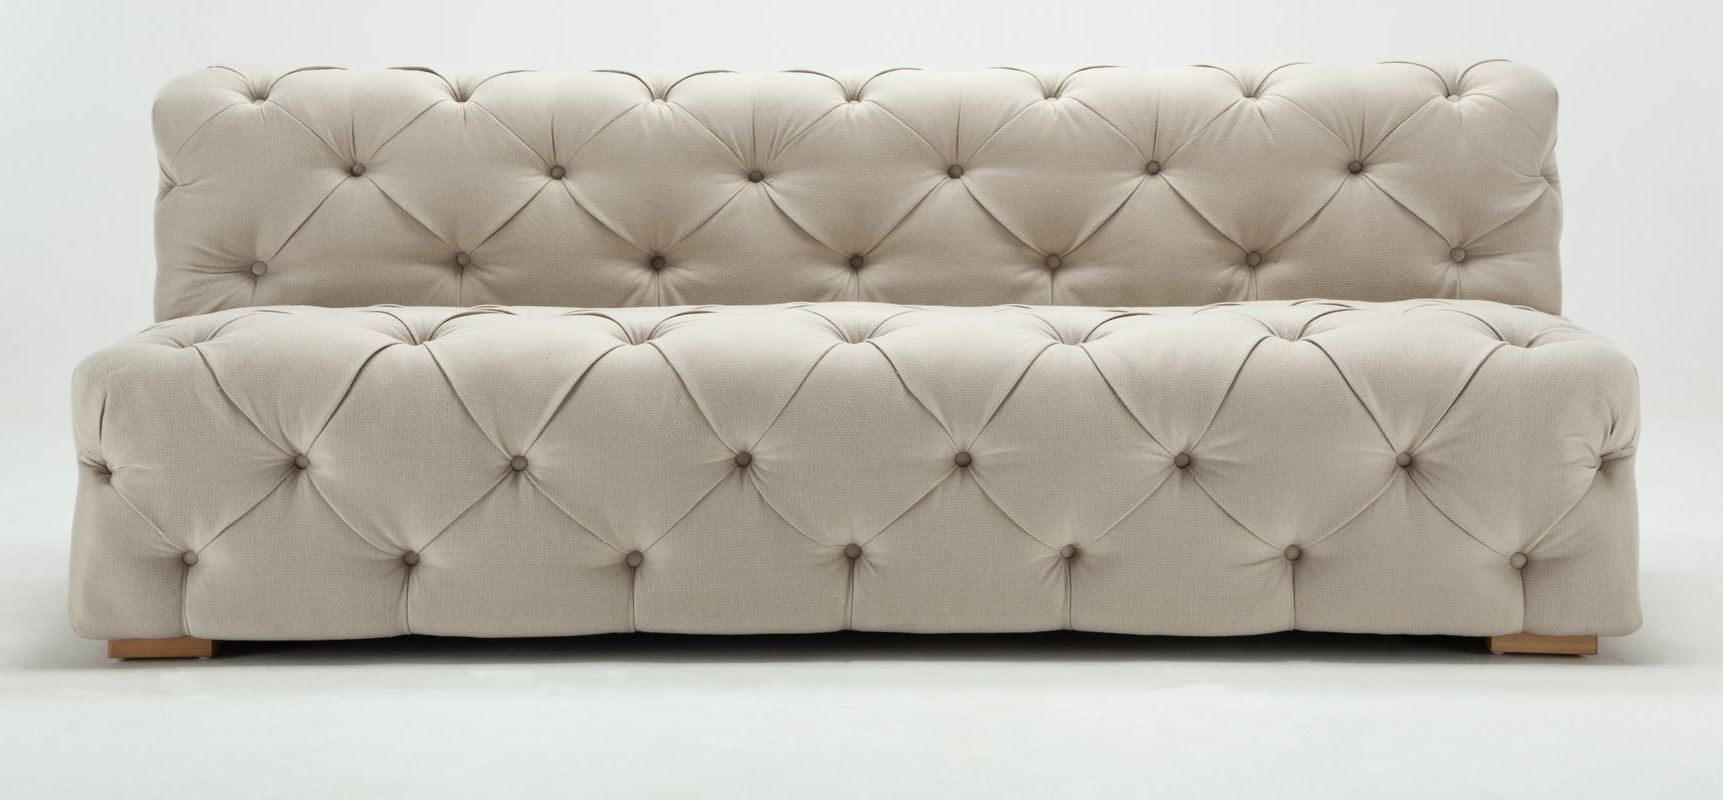 Small Armless Sofas Intended For Widely Used Rosdorf Park Pratt Tufted Armless Sofa & Reviews (View 12 of 15)